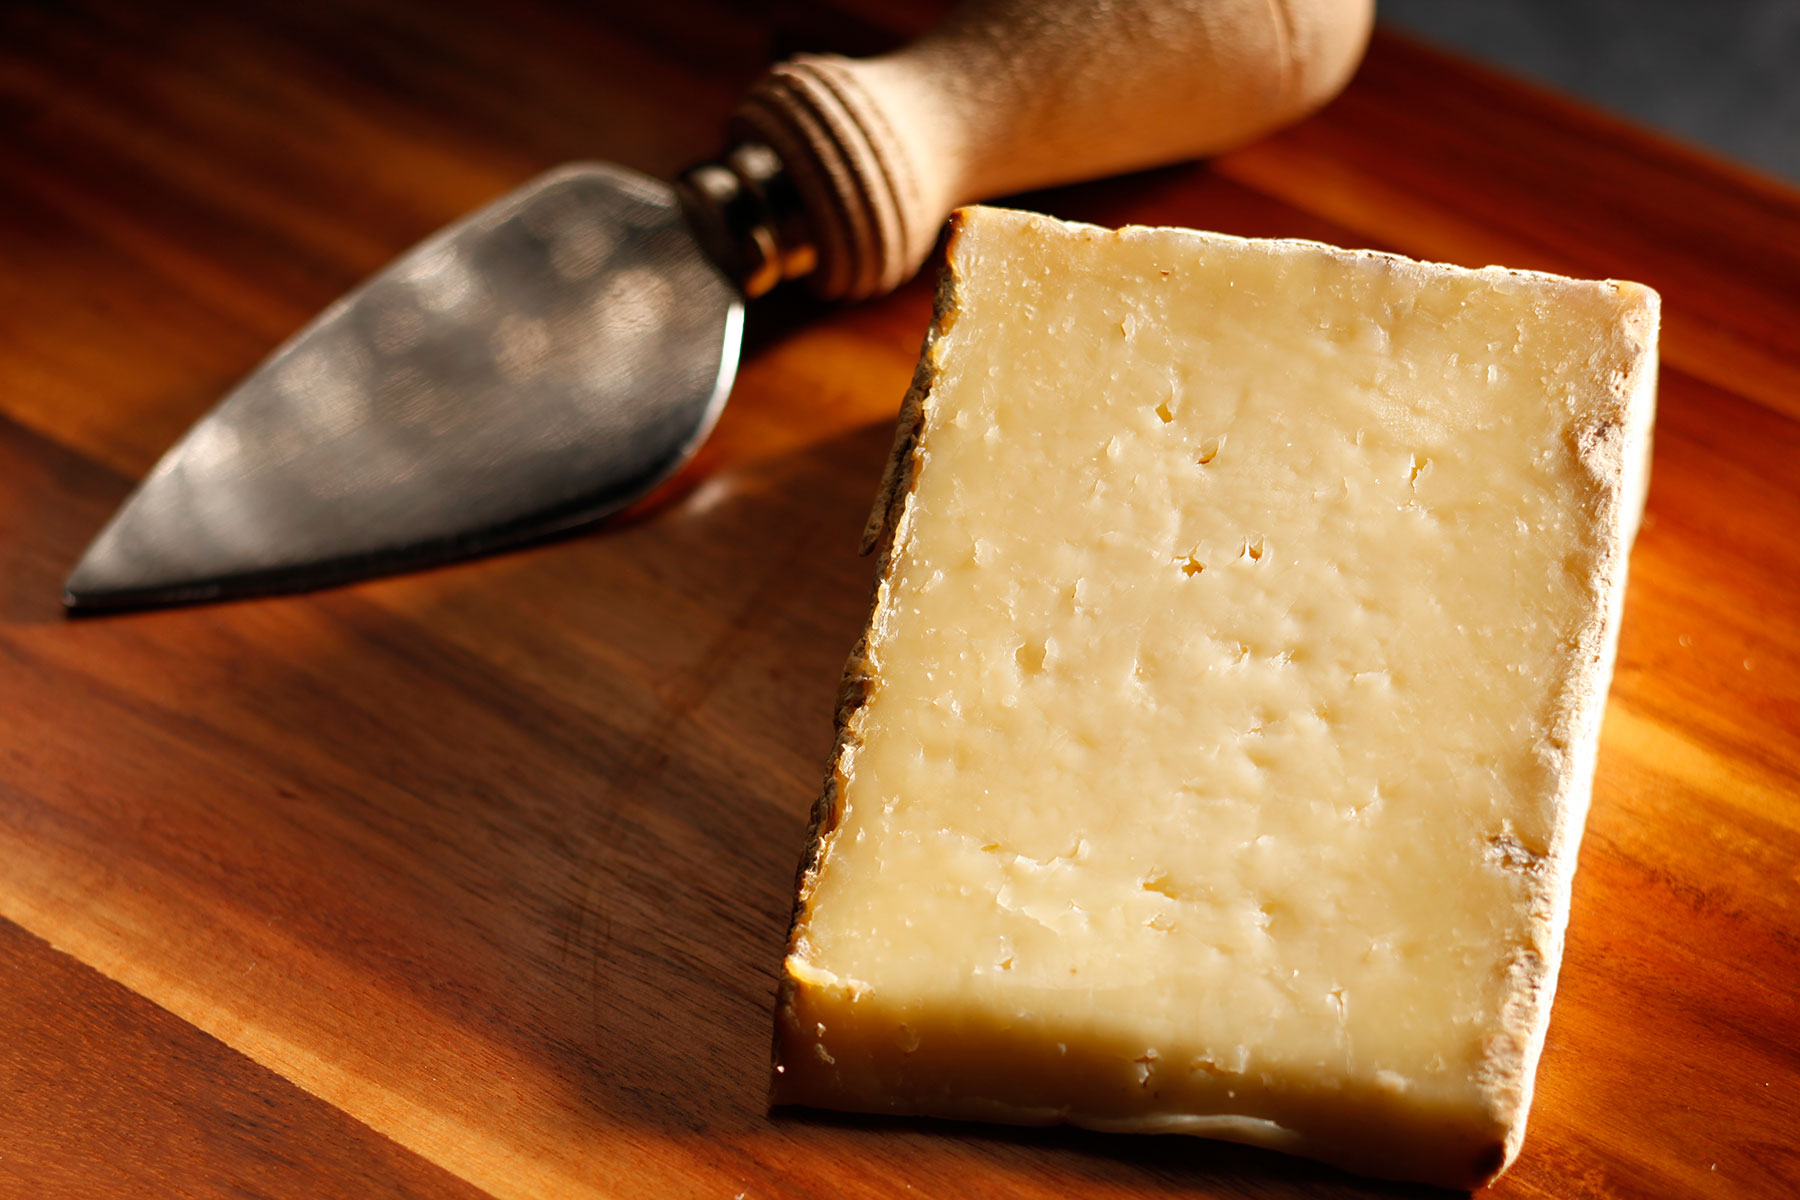 CHEESE16_landaff_025_cl_1